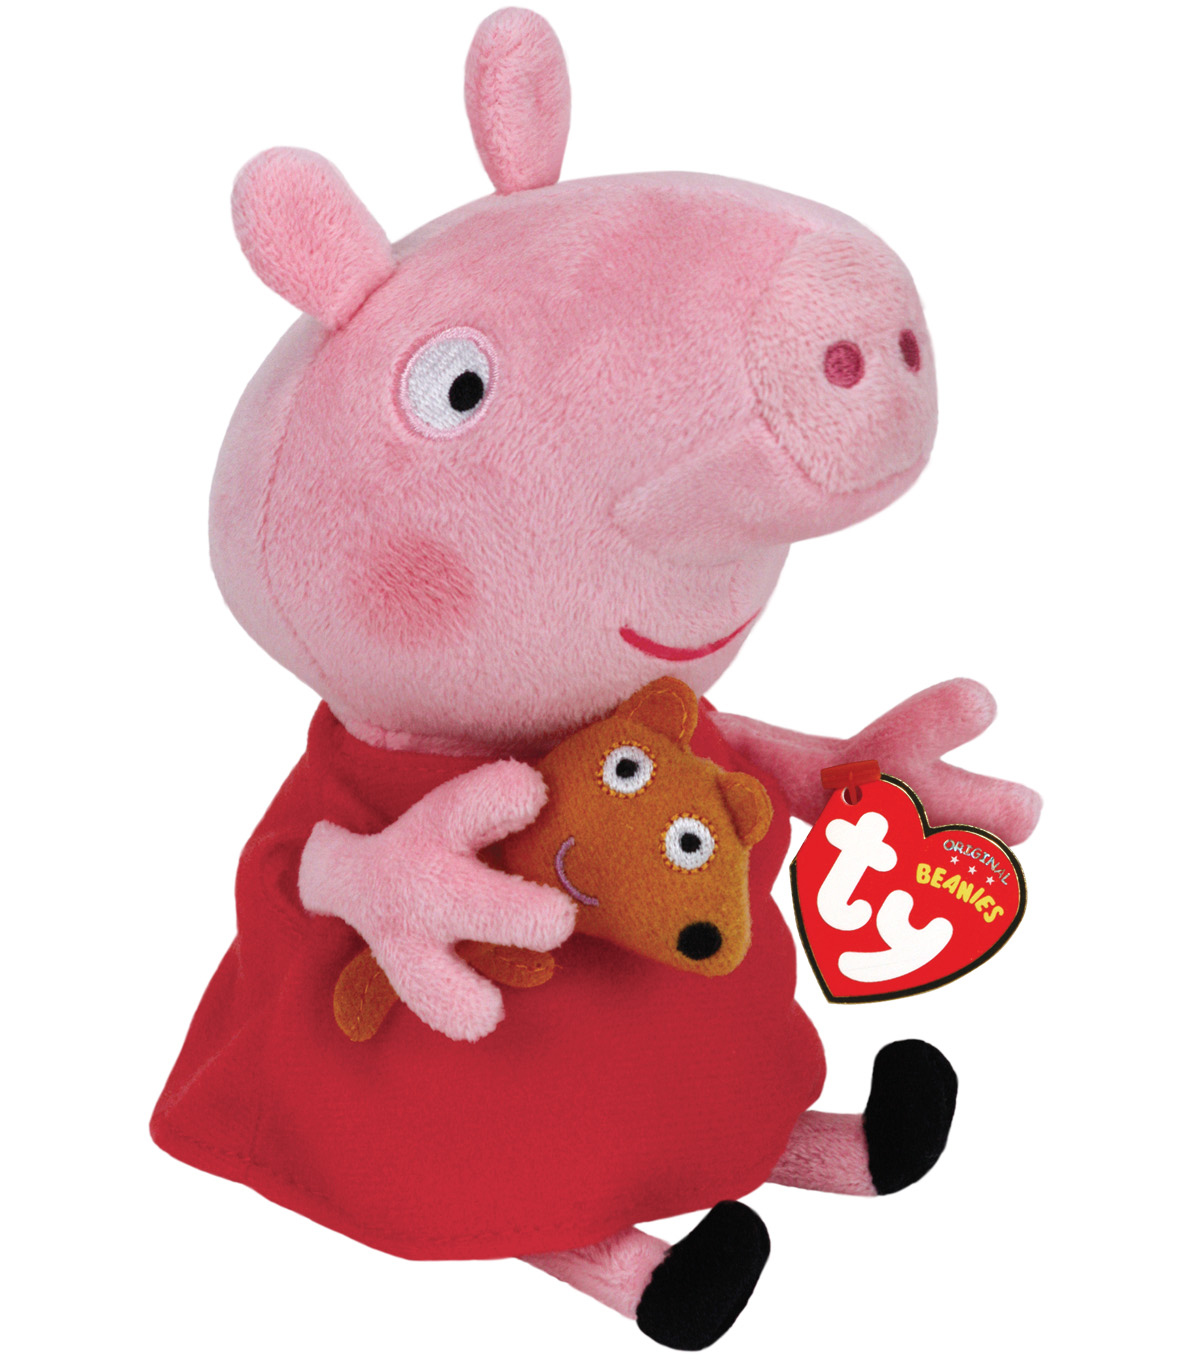 Ty Peppa the Pig Plush